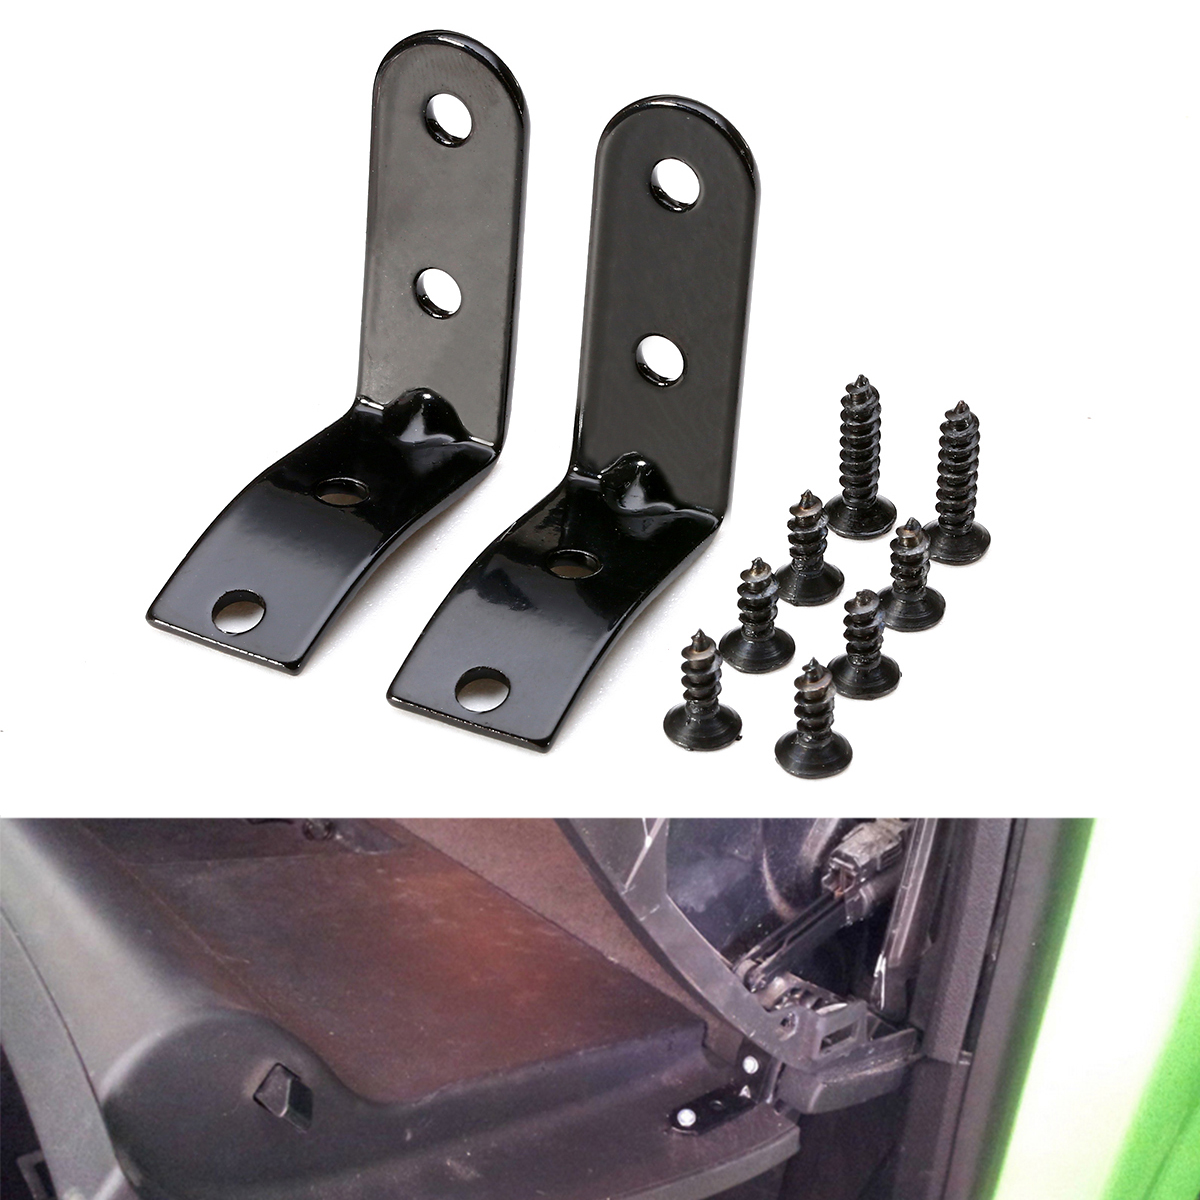 New Arrival 1set Hinge Brackets + 8x Screws High Quality Glove Box Lid Hinge Snapped Repair Kit For <font><b>Audi</b></font> <font><b>A4</b></font> B6 B7 8E 2001-2008 image